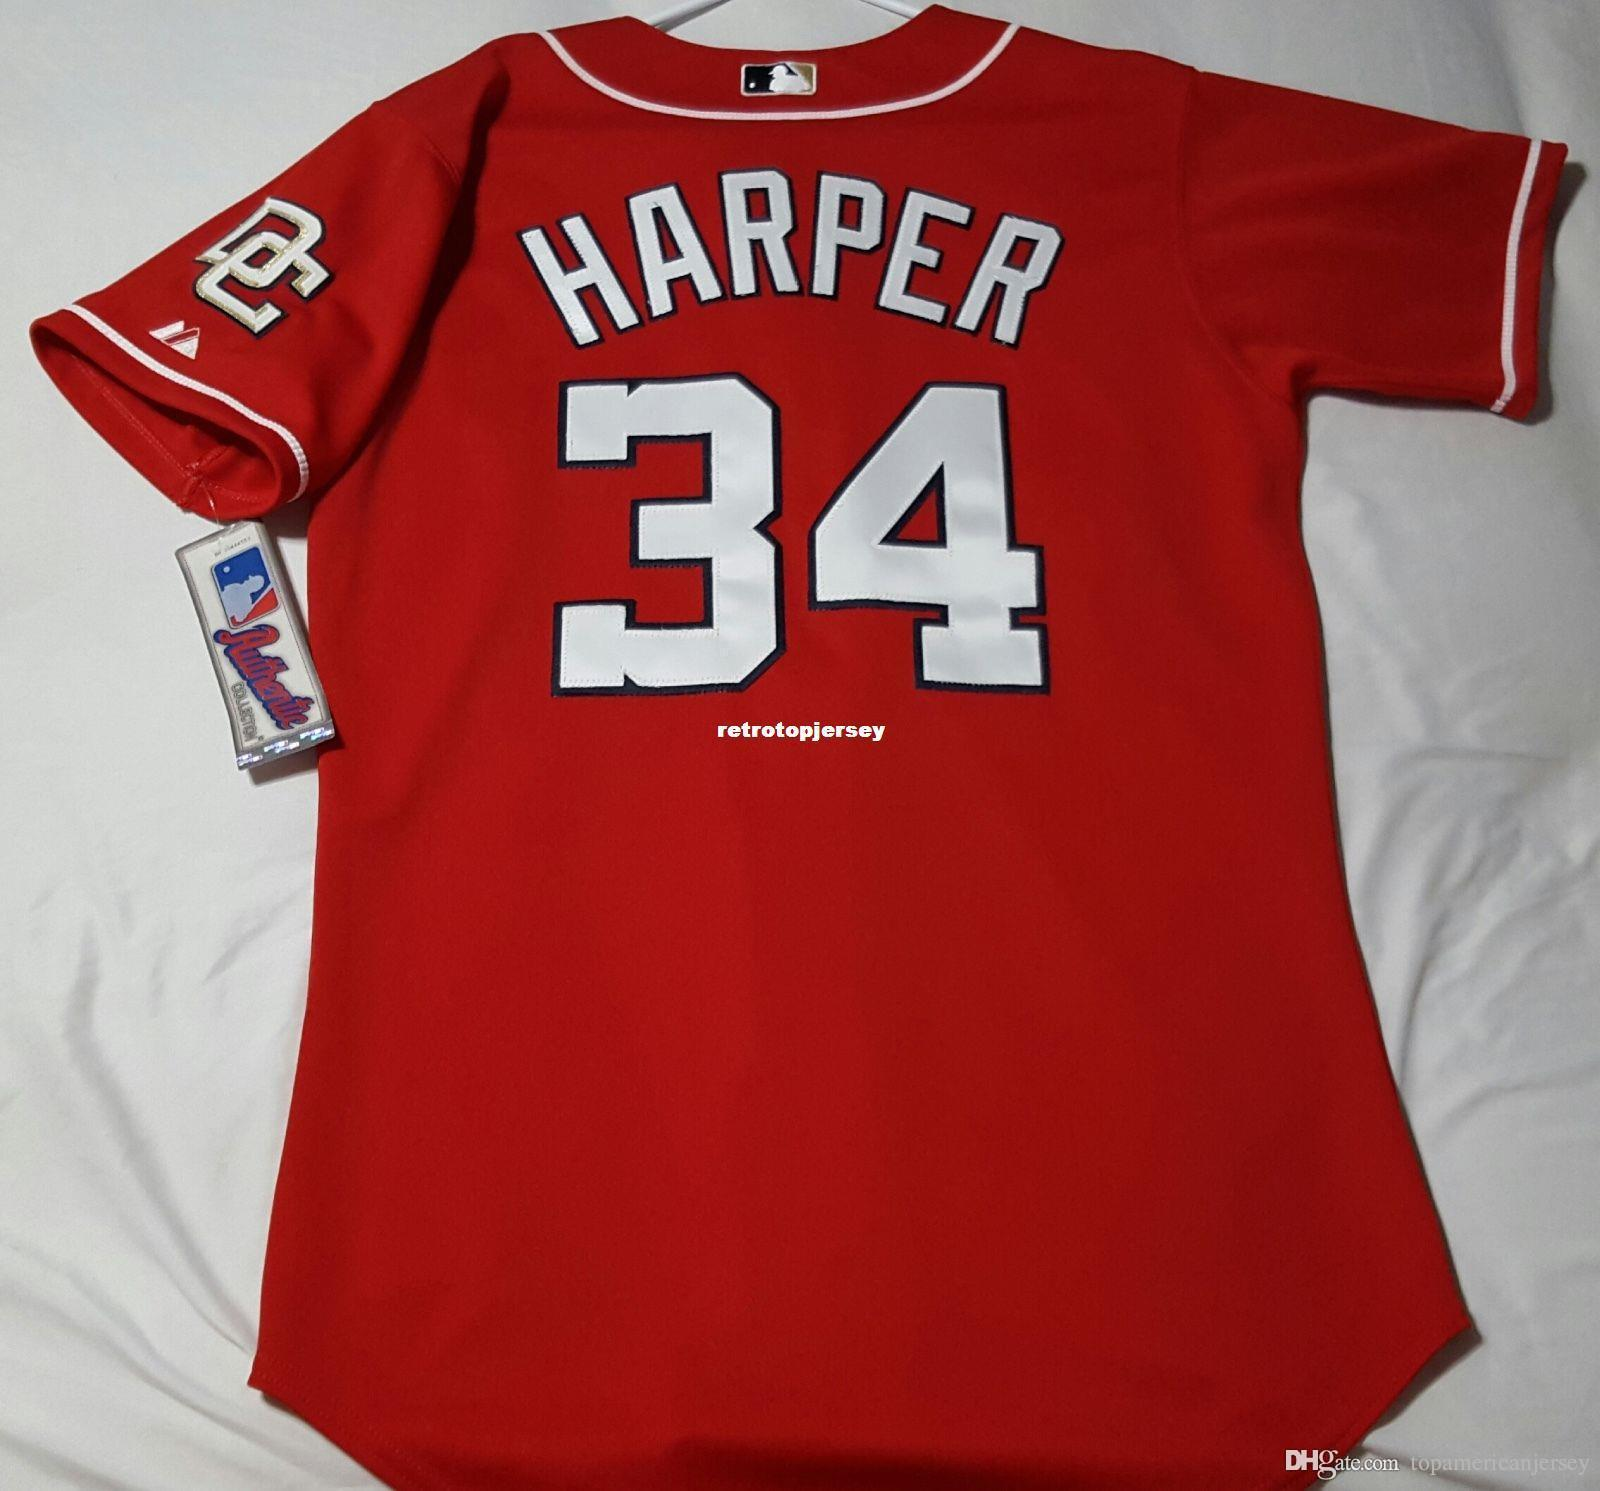 Majestic economici Washington # 34 Bryce Harper Jersey Mens cucito SHARP! pullover di baseball grande e grosso formato XS-6XL all'ingrosso